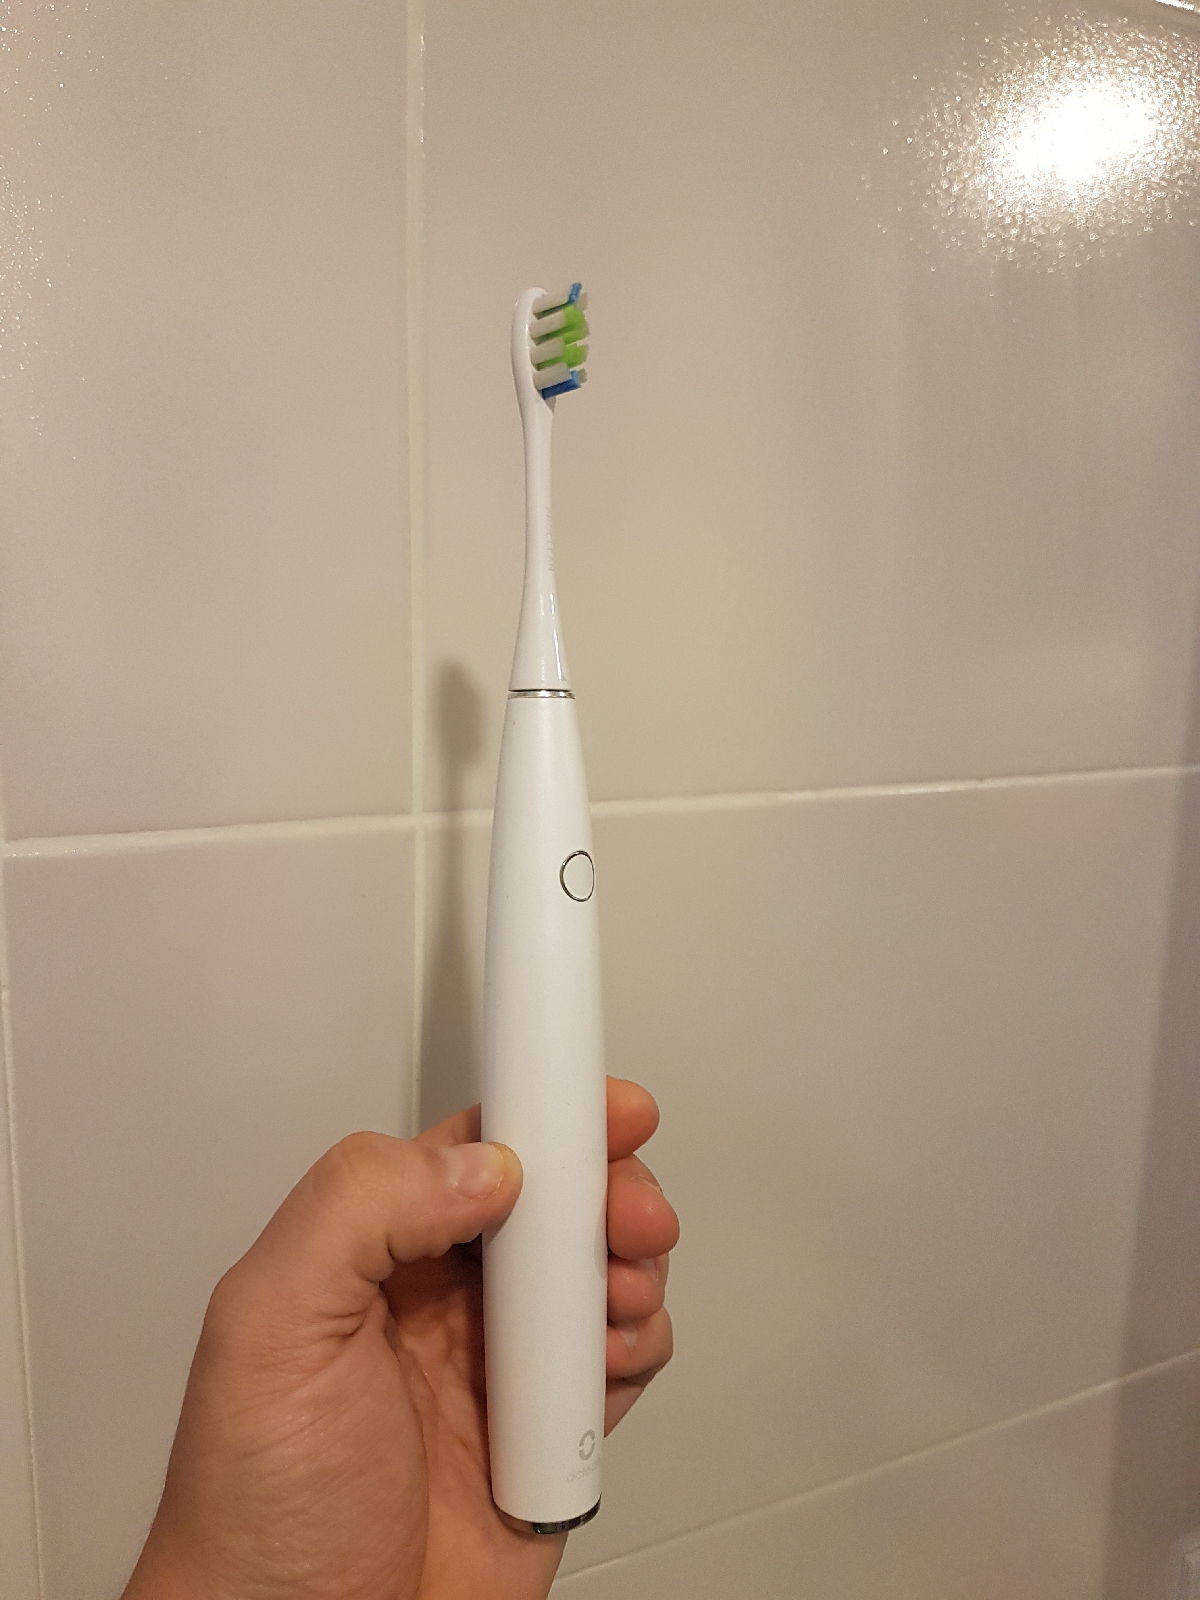 Xiaomi Oclean One toothbrush in hand